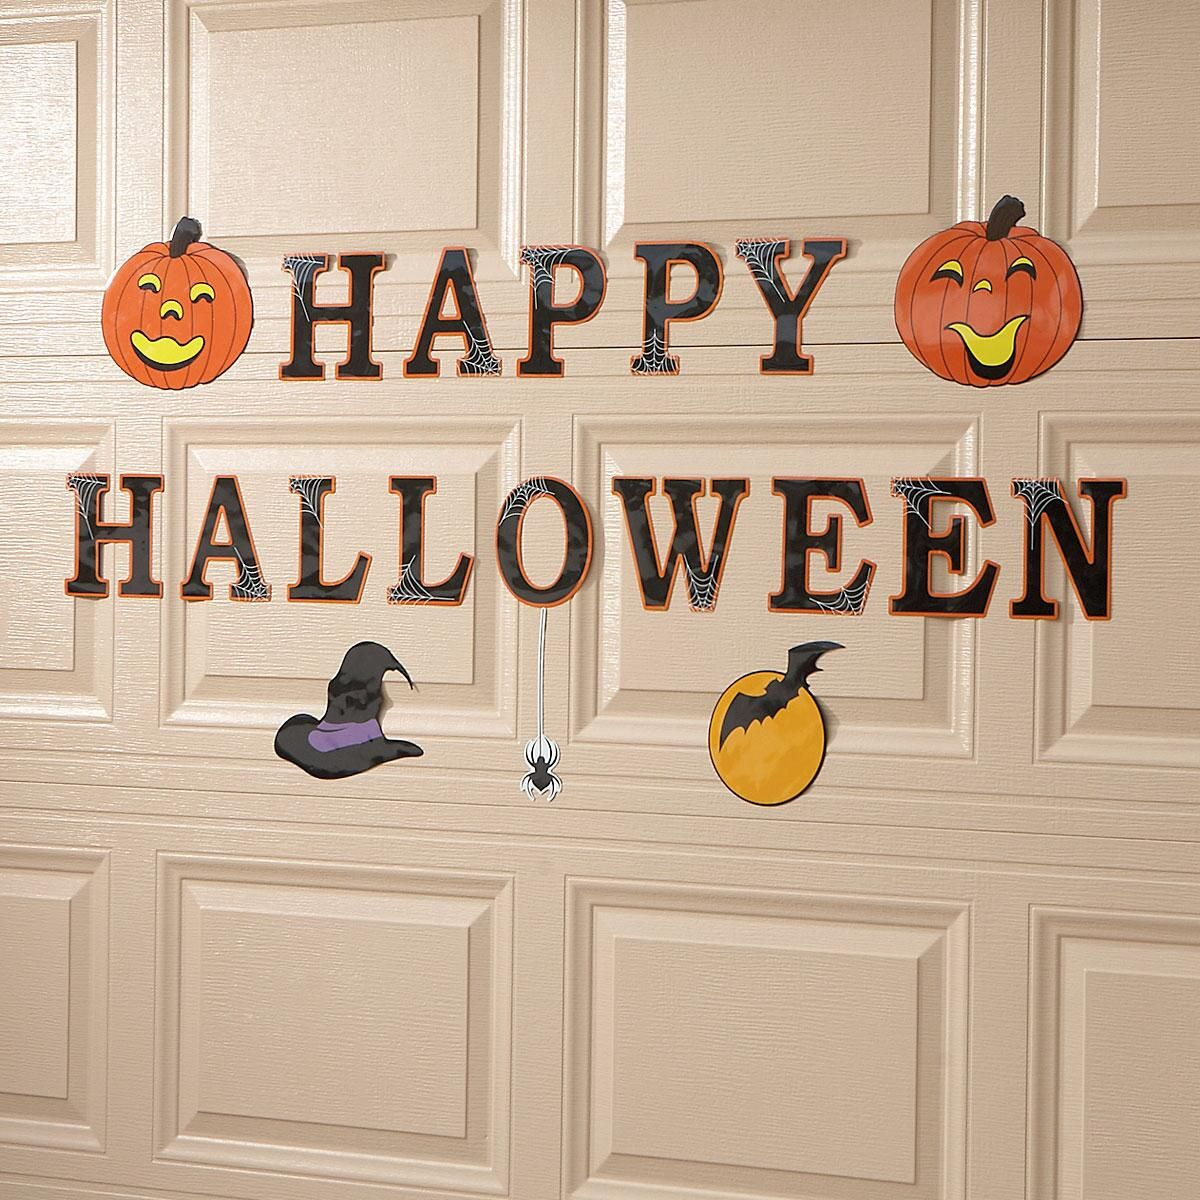 Halloween Garage Door Magnets Set of weather-resistant garage door magnets includes a witch's hat, a moon with a bat, a spider, 2 jack-o'-lanterns and 6  letters that spell  Happy Halloween.  Set of 19